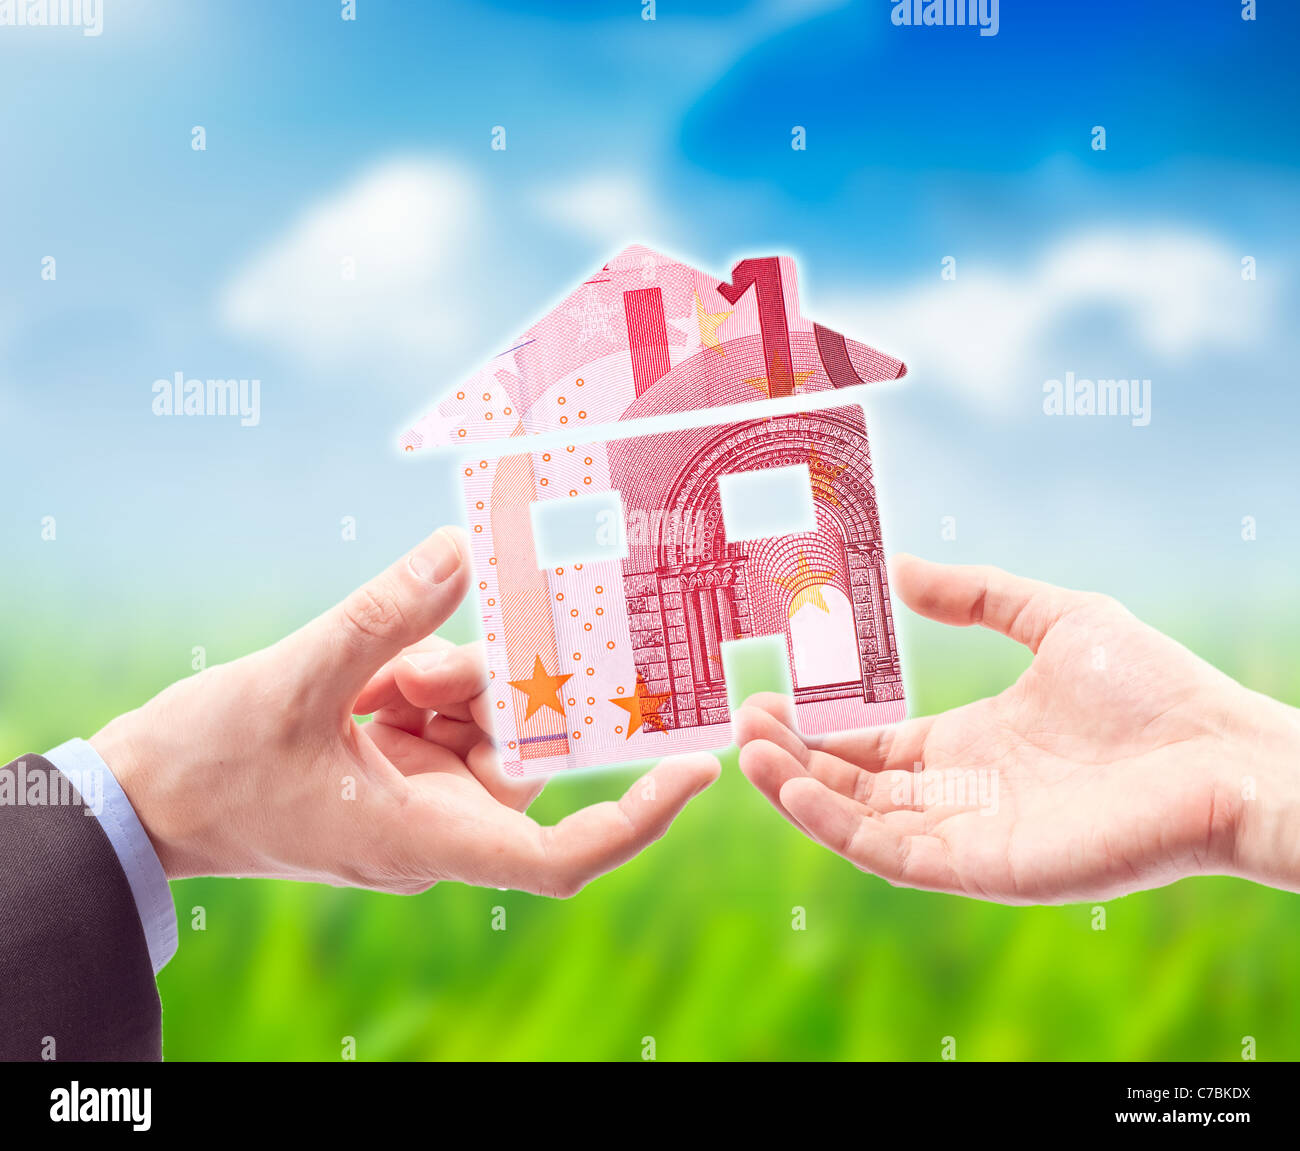 The House made from EURO in the Hand against the sunny blue sky as a symbol of the real estate business - Stock Image